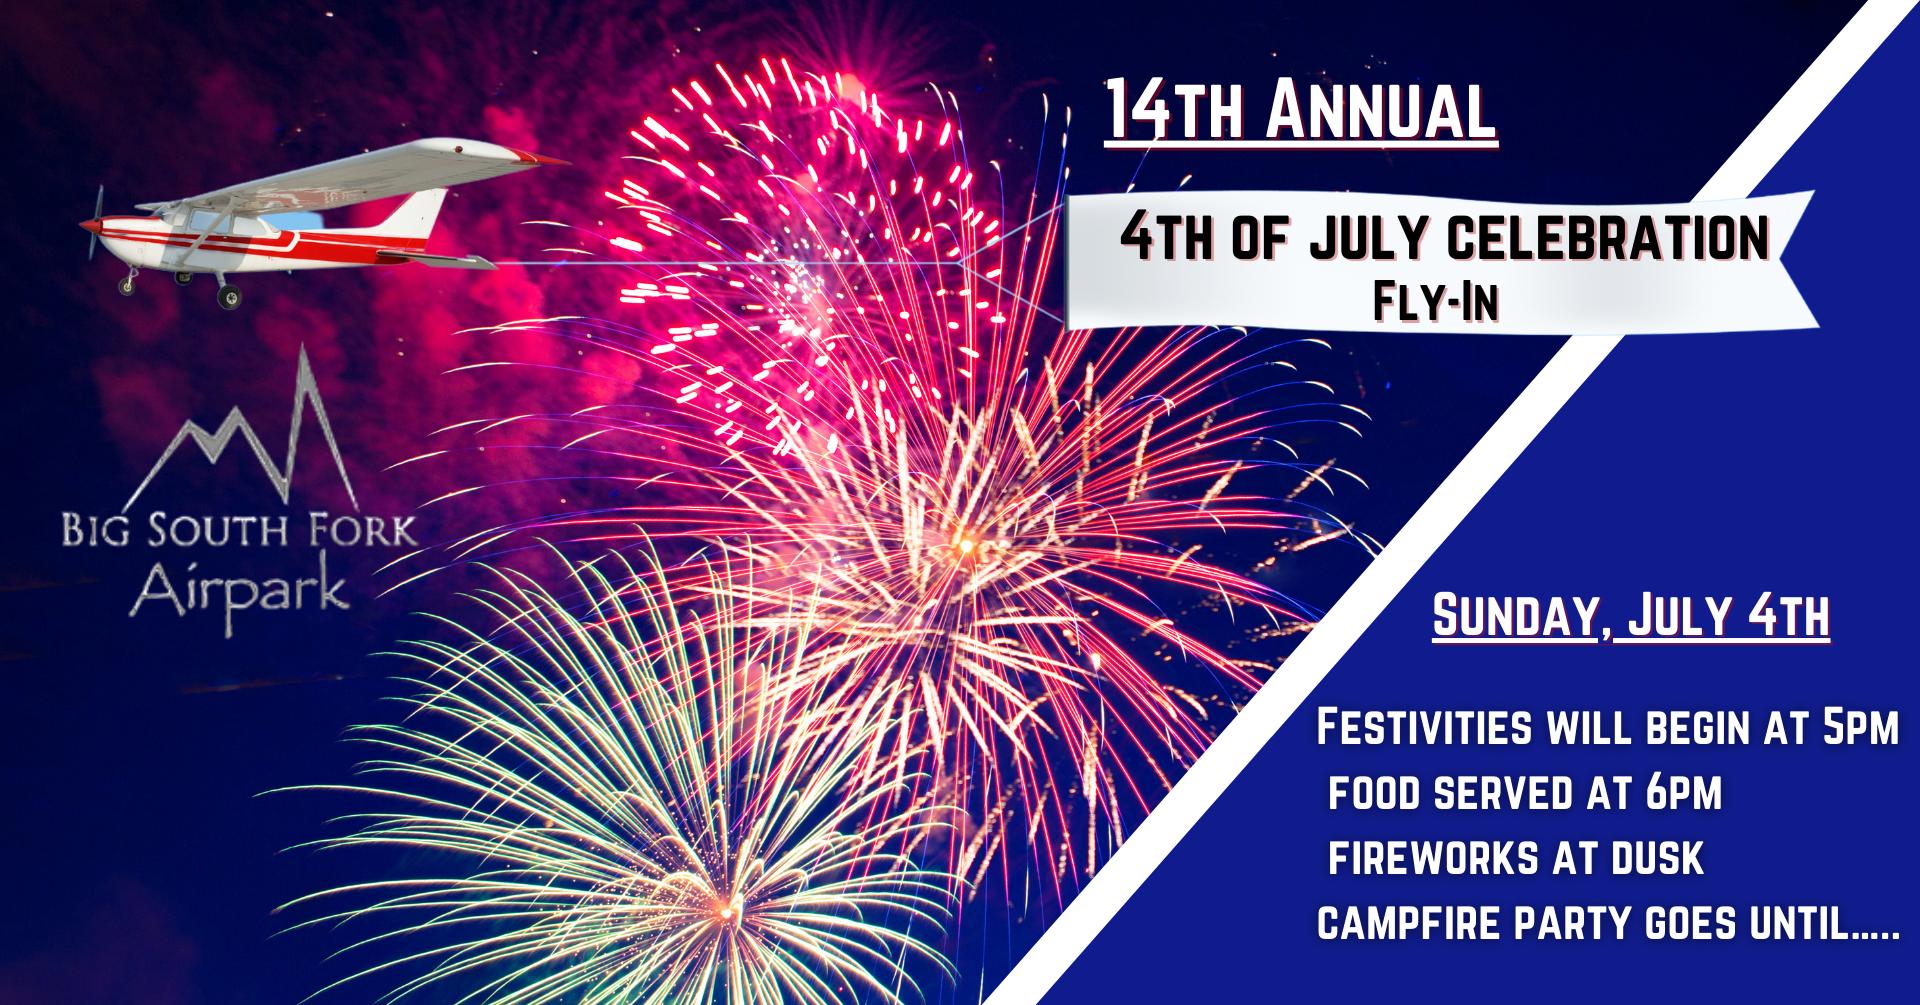 BSFA 14TH ANNUAL 4TH OF JULY CELEBRATION AND FLY IN